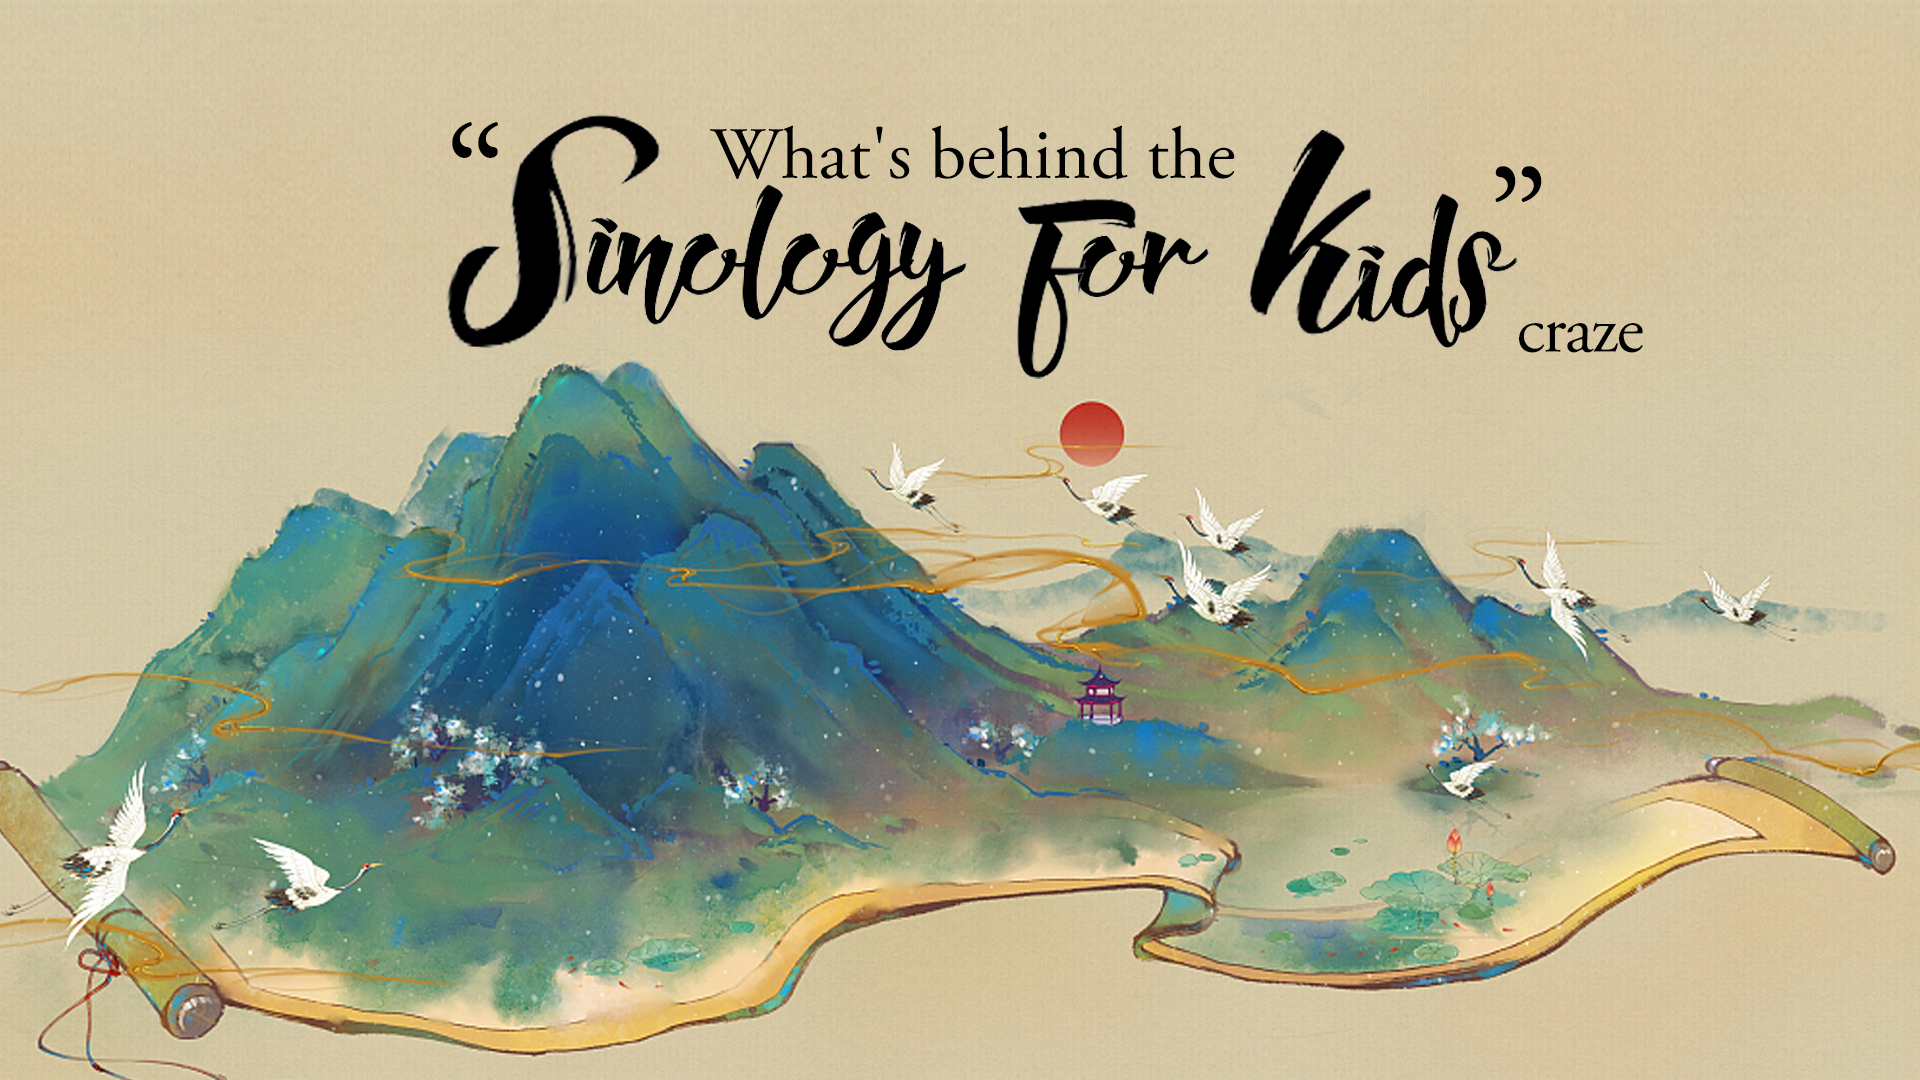 What's behind the 'Sinology for kids' craze